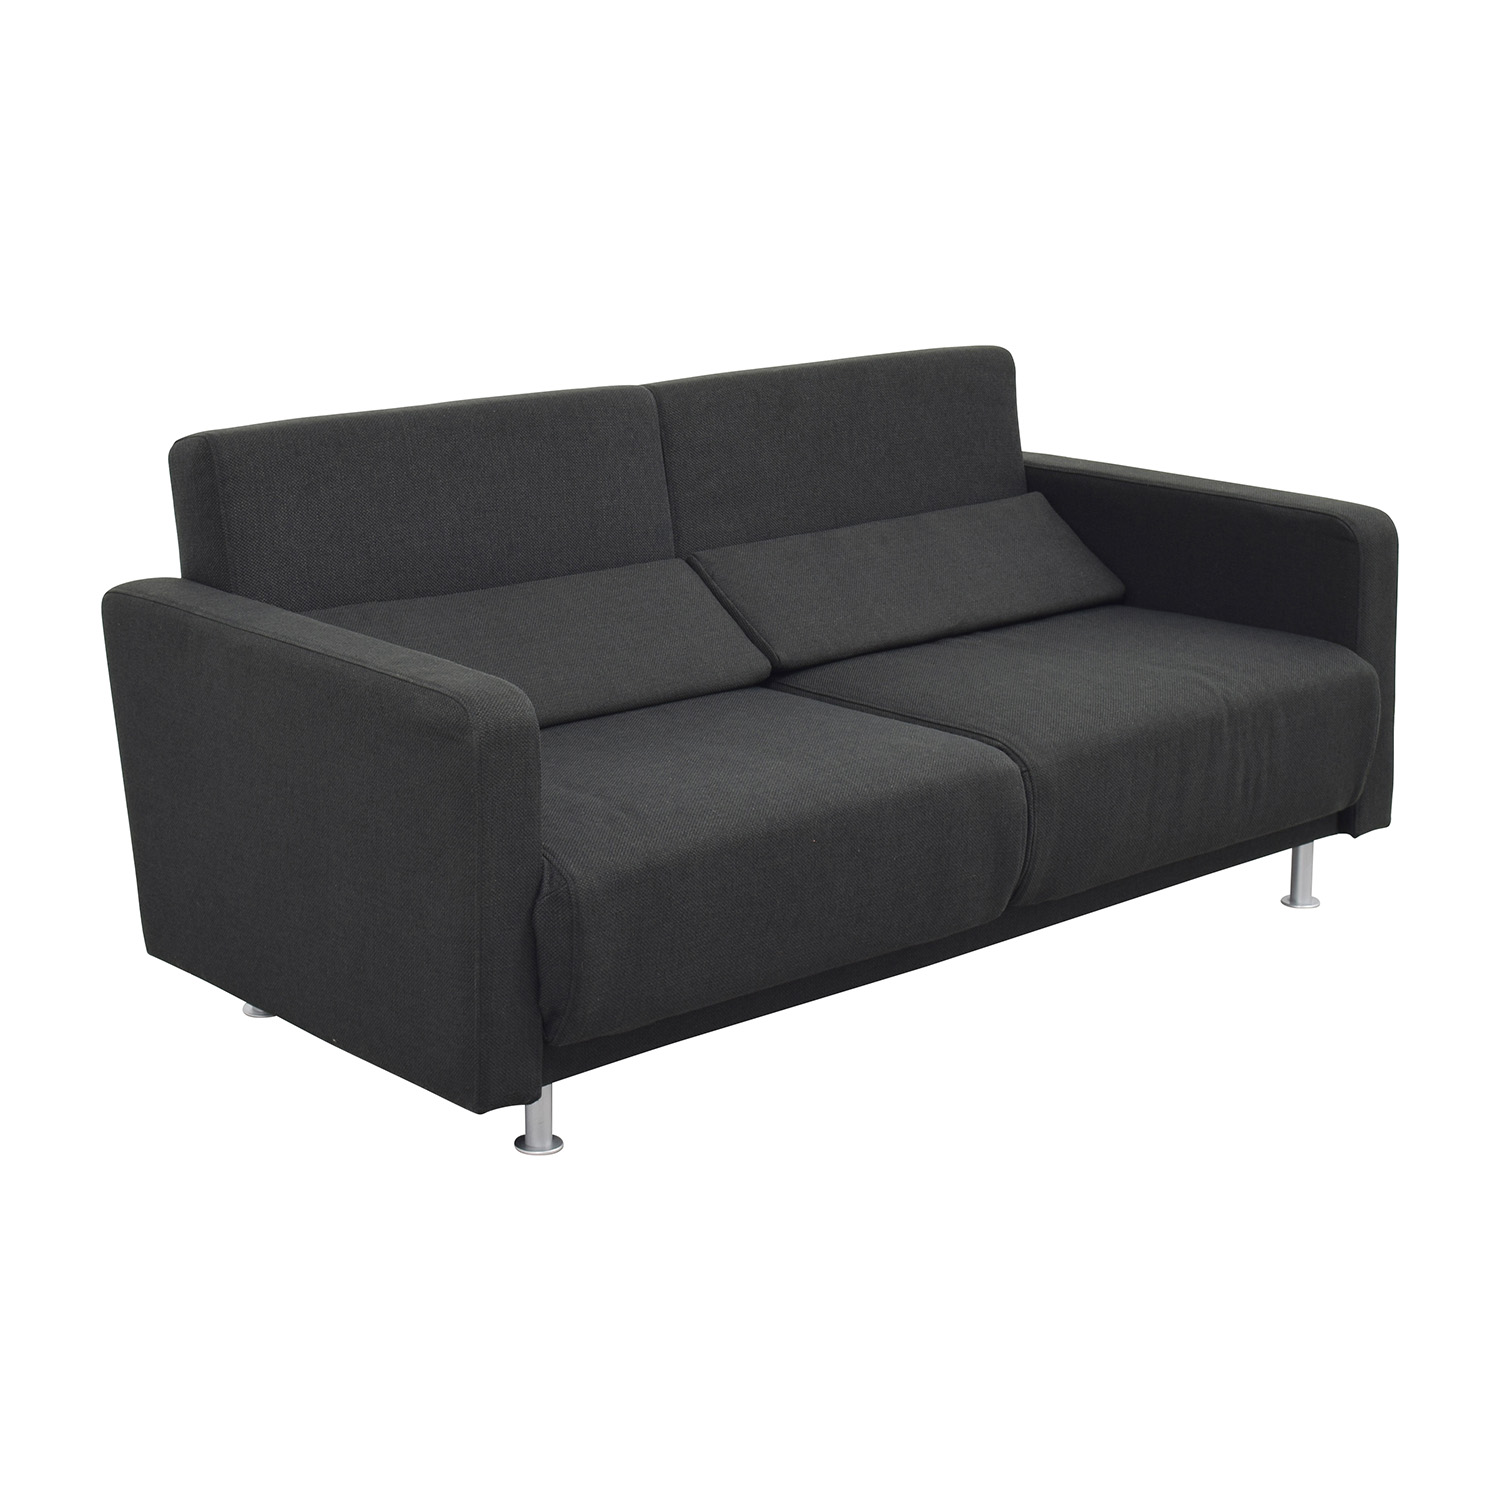 67 Off Boconcept Boconcept Melo Black Sofa Bed Sofas